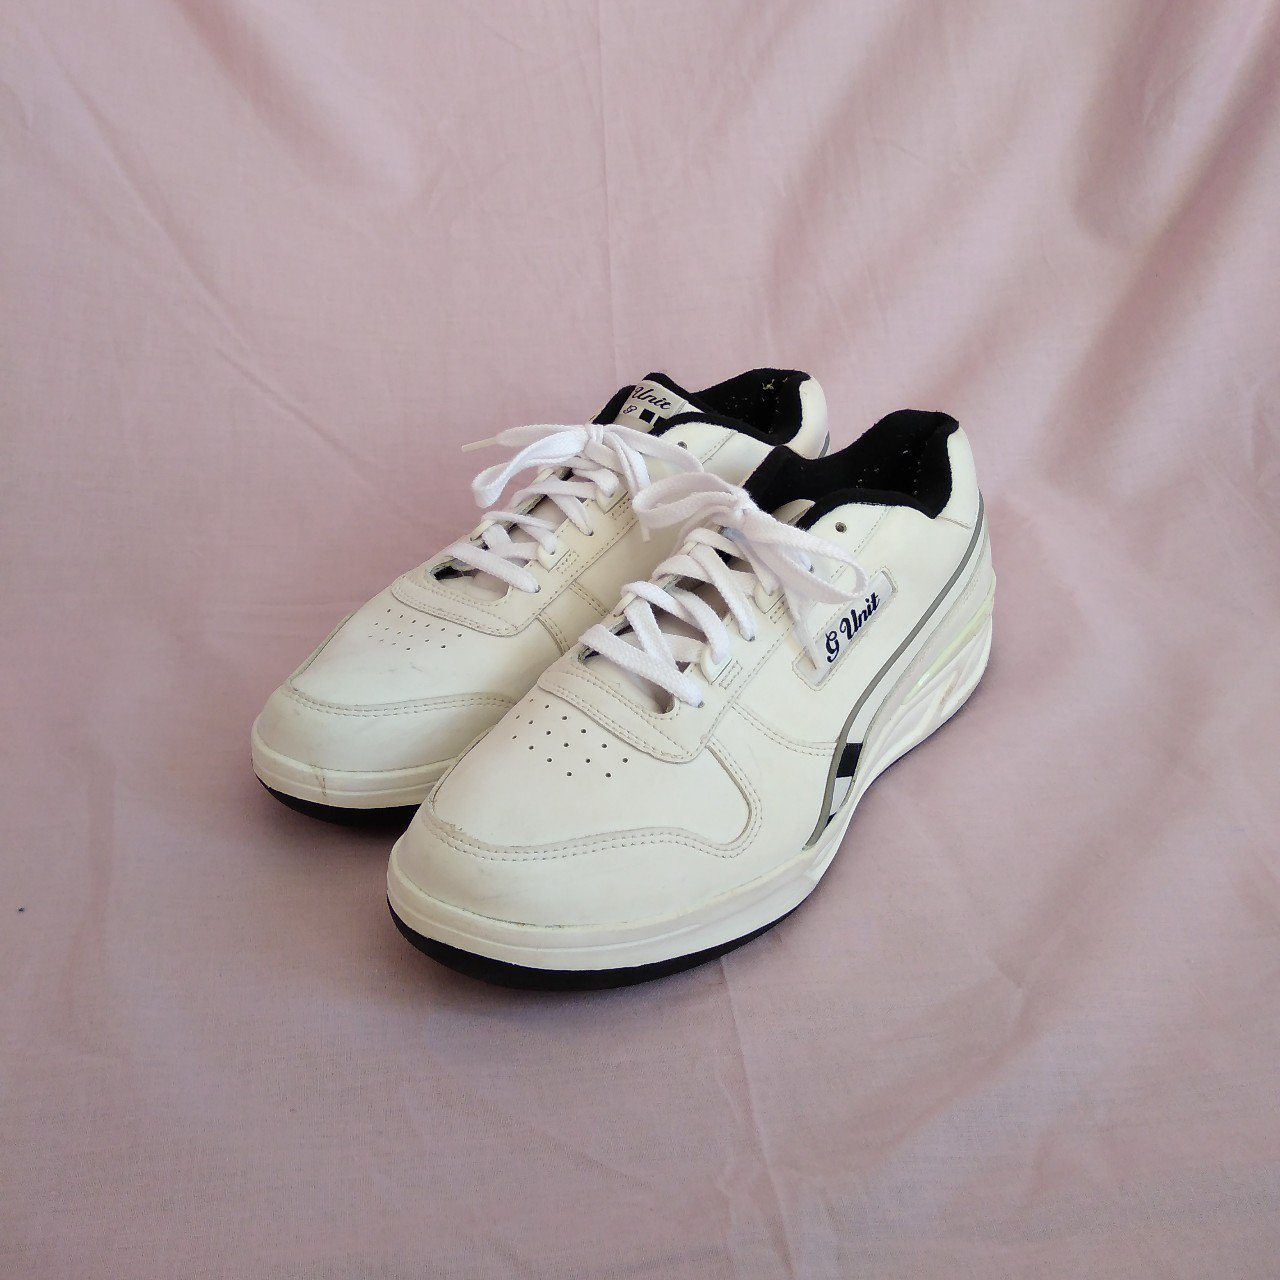 G-unit Reebok RARE Trainers UK 9 Great condition 4dc00ef99